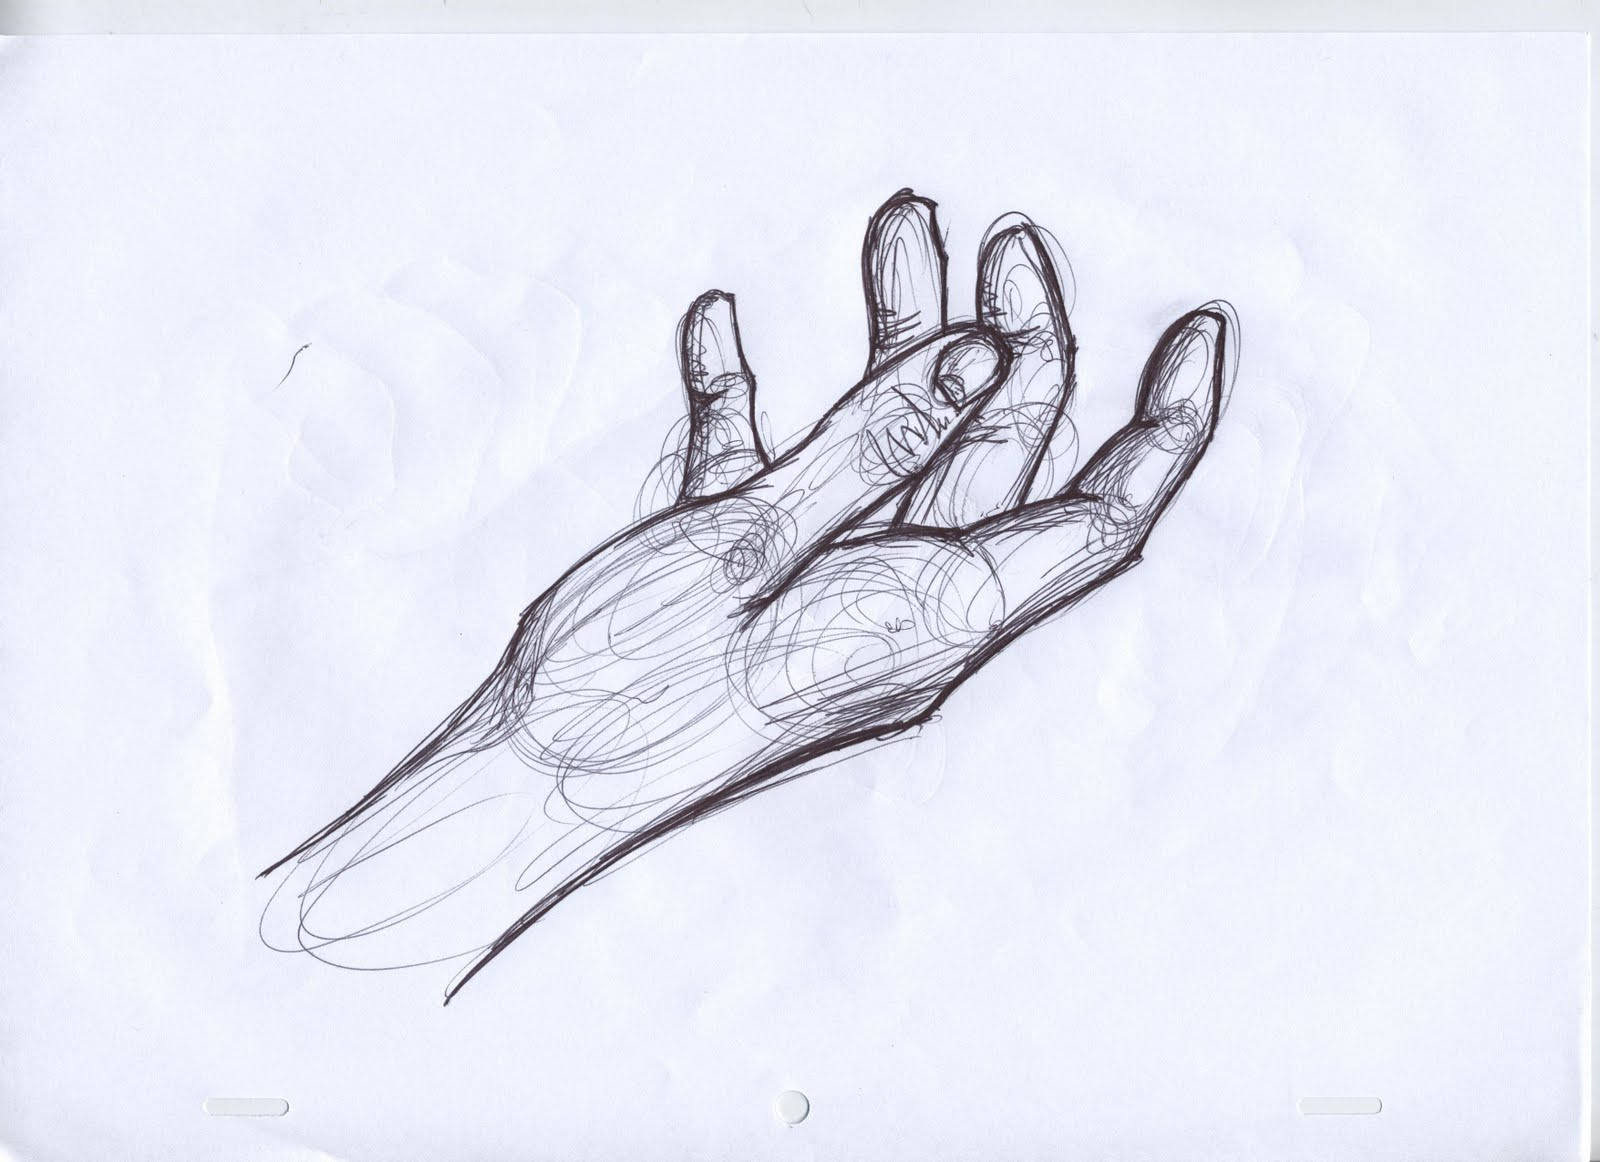 Drawn pen hand drawing Hand Search  reaching drawing